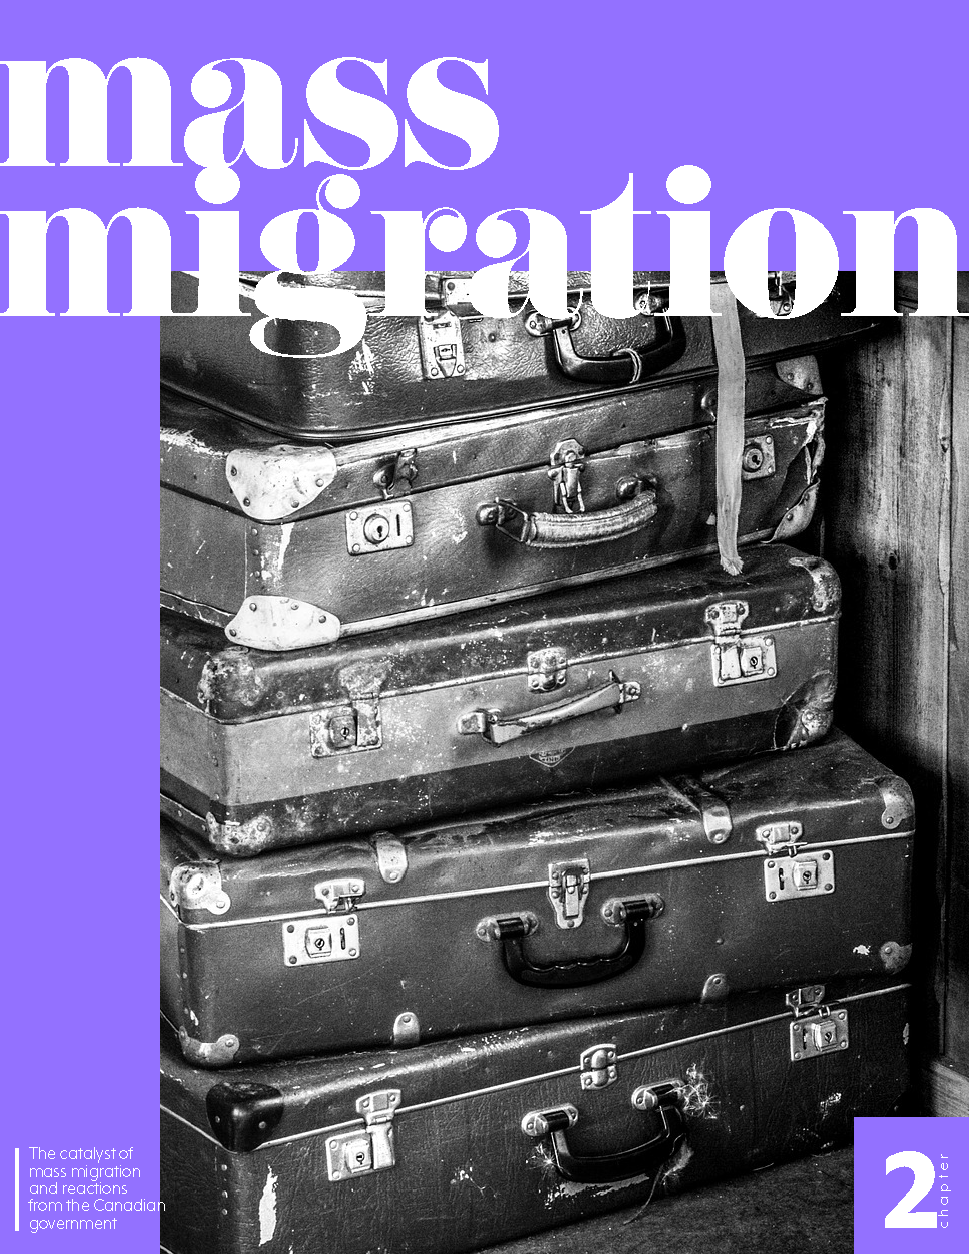 CHAPTER 2: Mass Migration